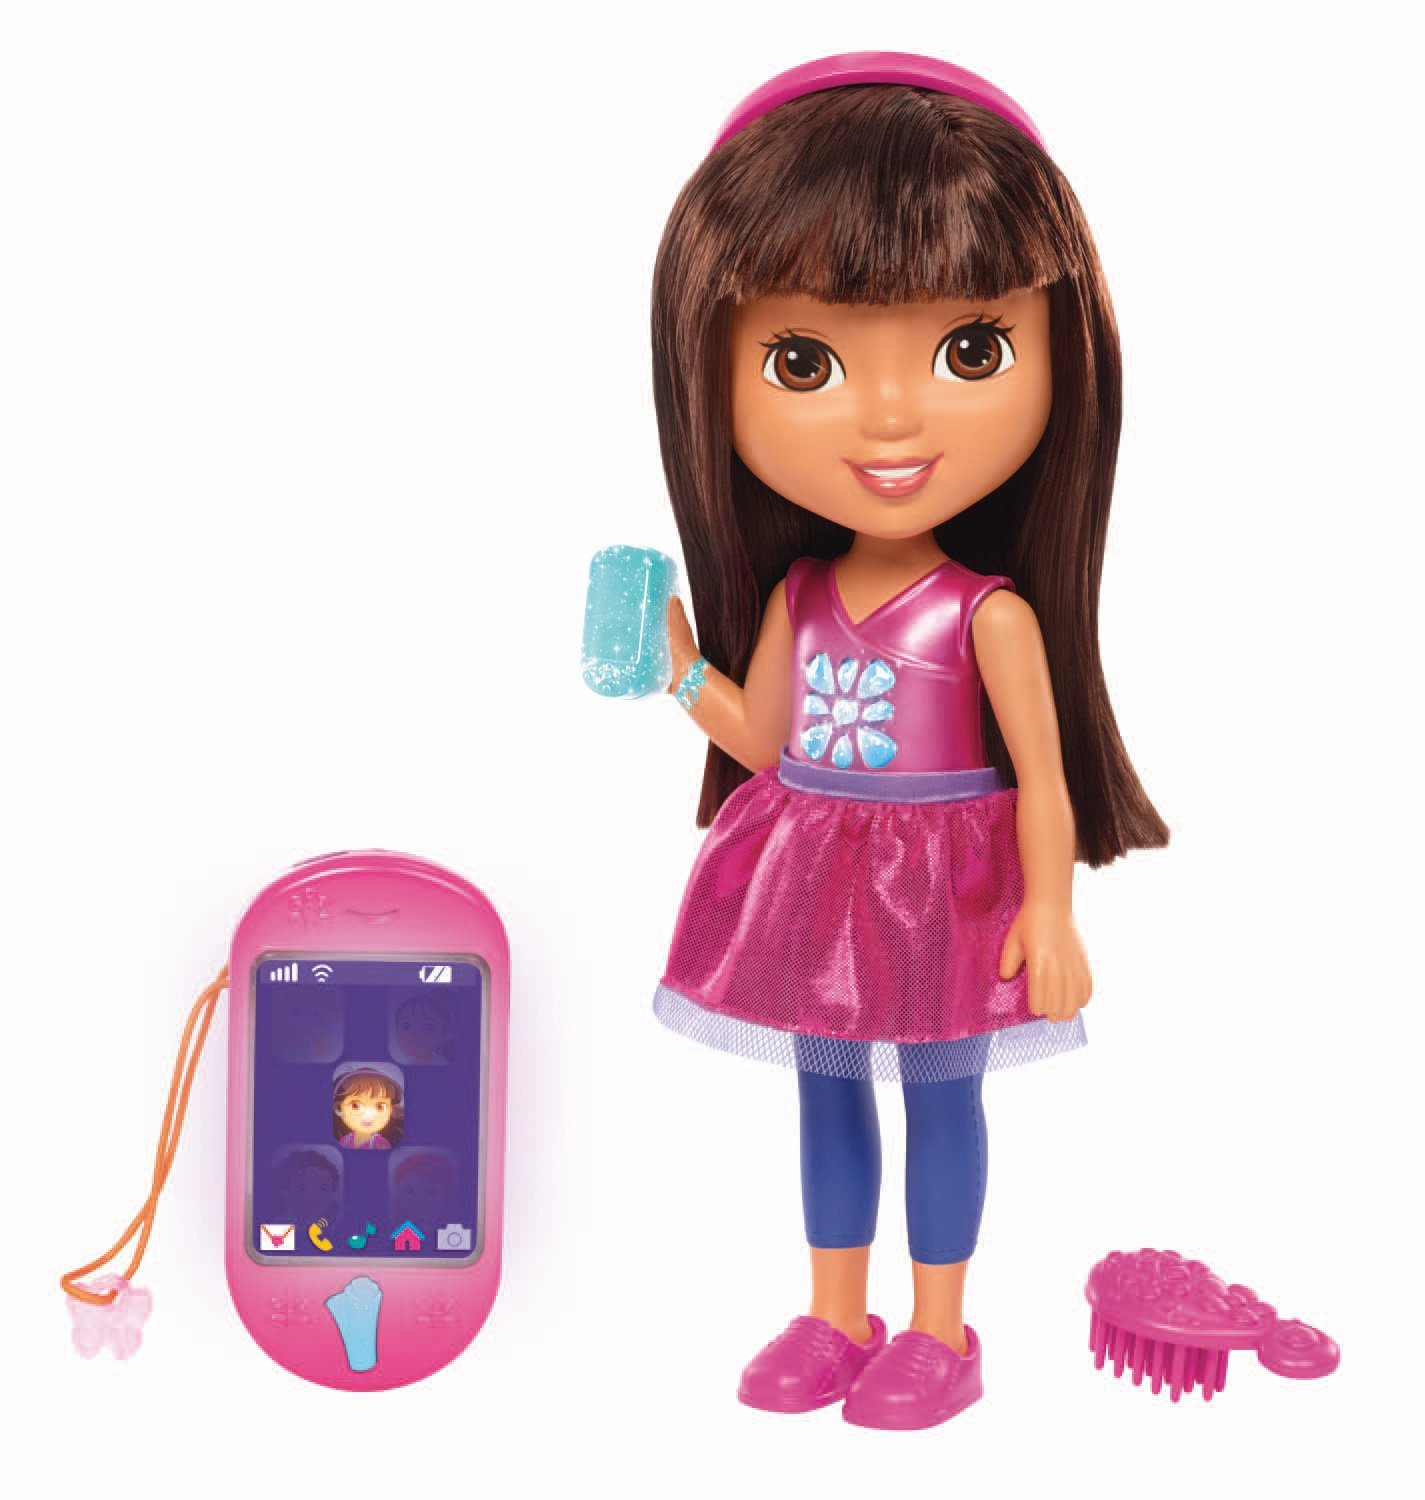 Fisher Price Dora & Friends Talking Dora & Smartphone, Join Dora on her adventures in... by